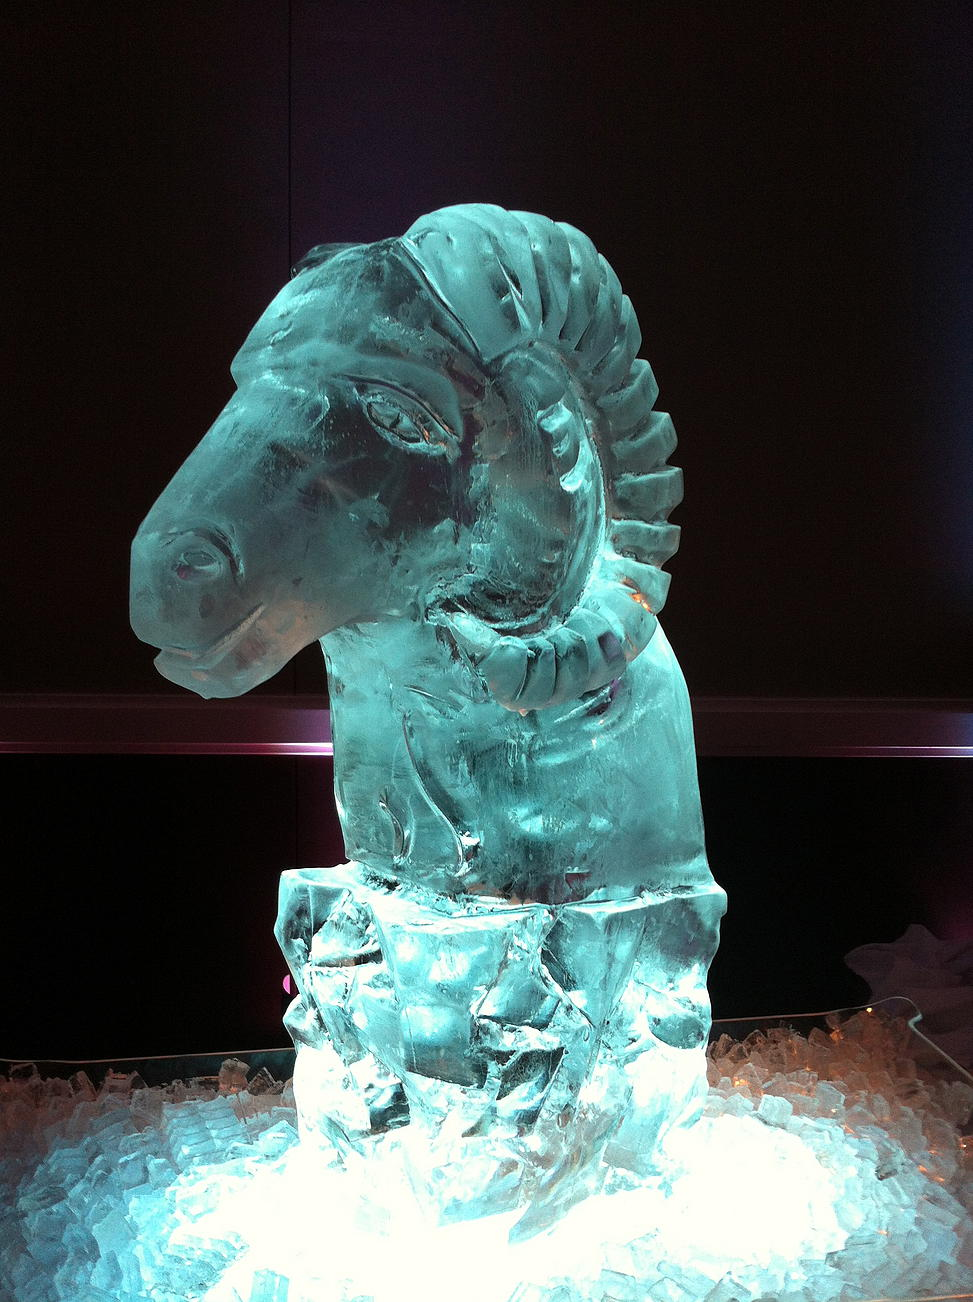 Ram head ice sculpture